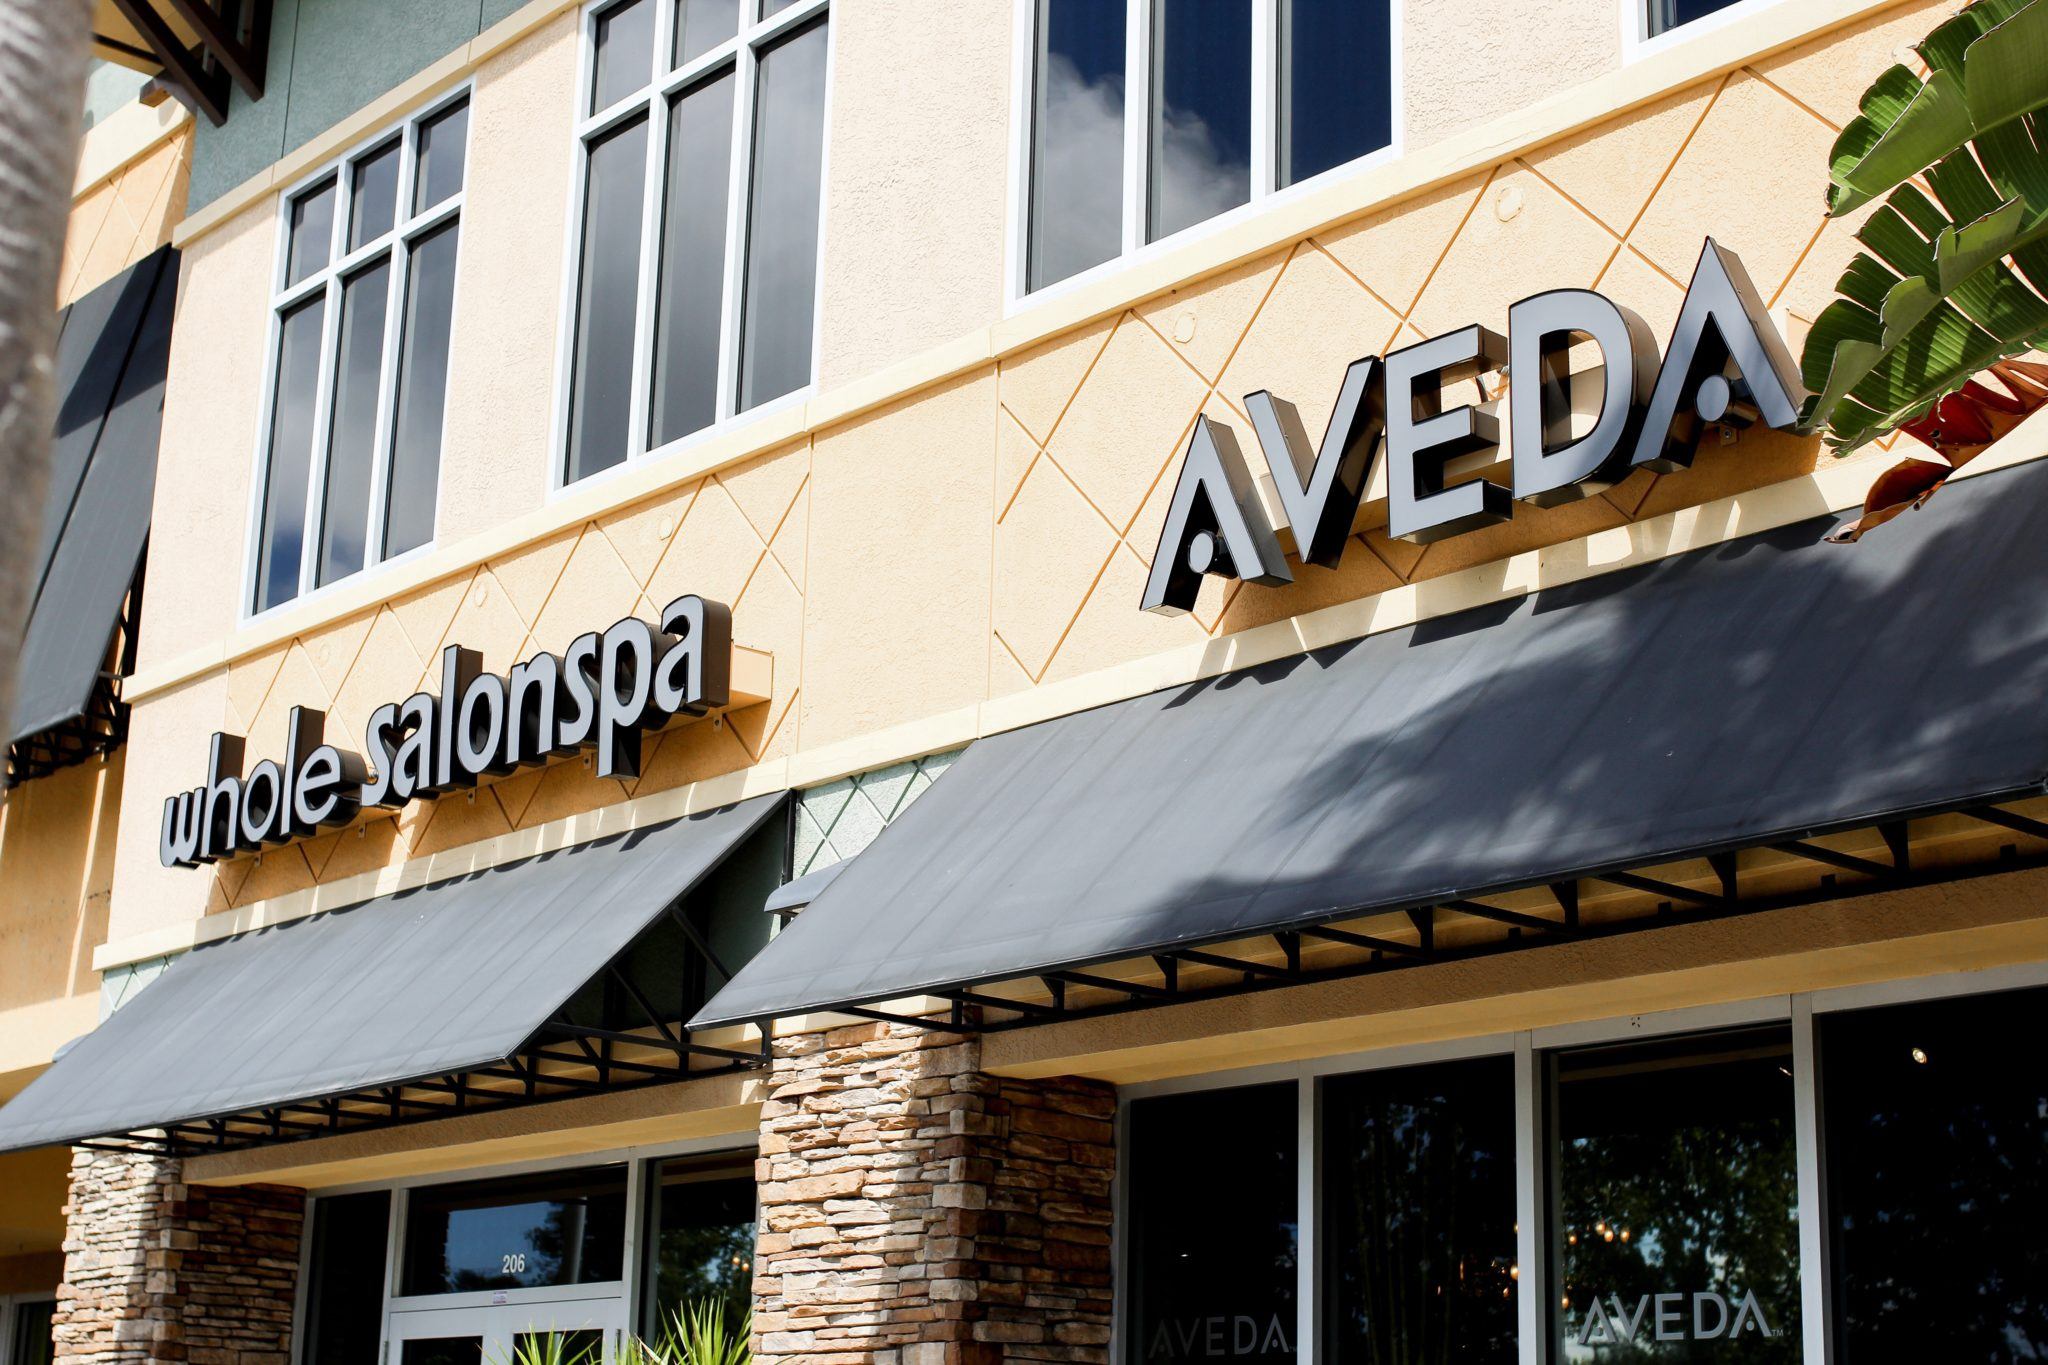 LOCAL FEATURE: WHOLE AVEDA SALON SPA